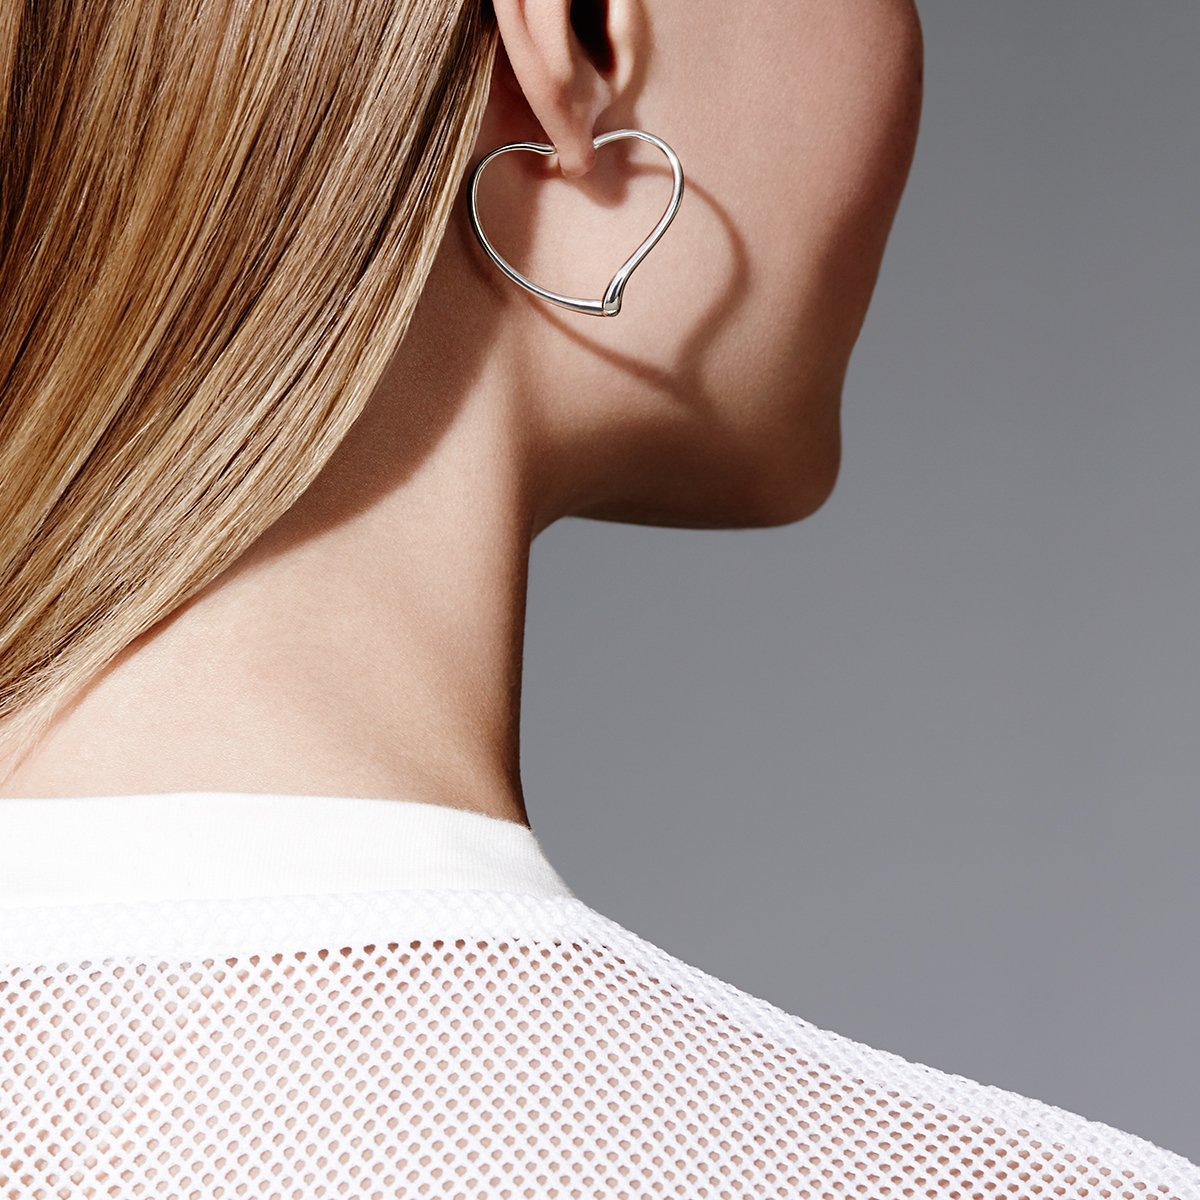 Tiffany Co On Twitter With Curves Like No Other Elsa Peretti Open Heart Earrings Are Iconic Elsaperetti Https T Vb0ozvhuha